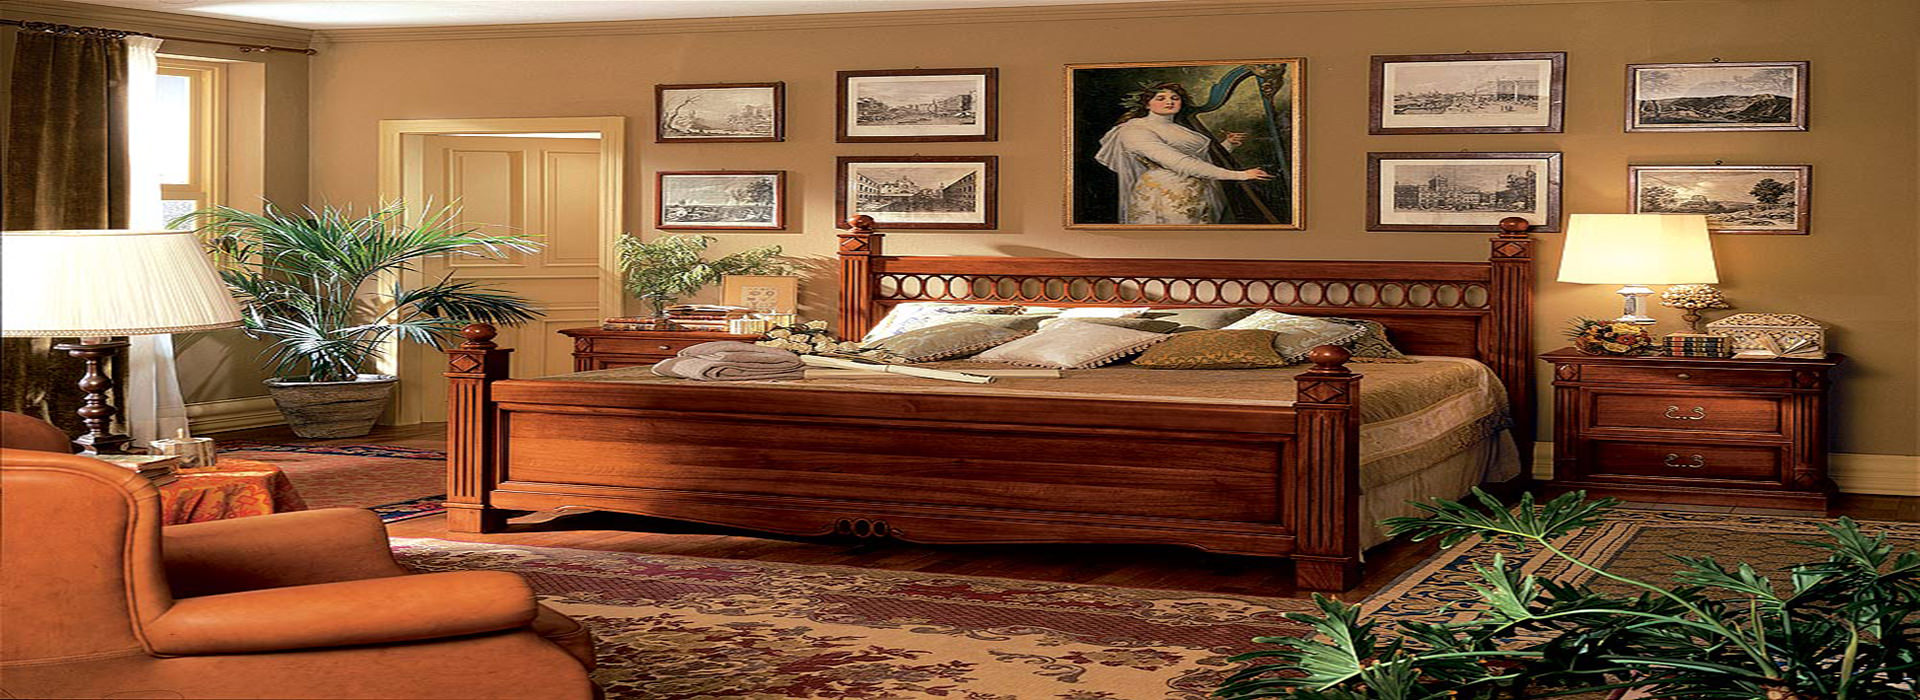 Very Beautiful Furniture for your dream home